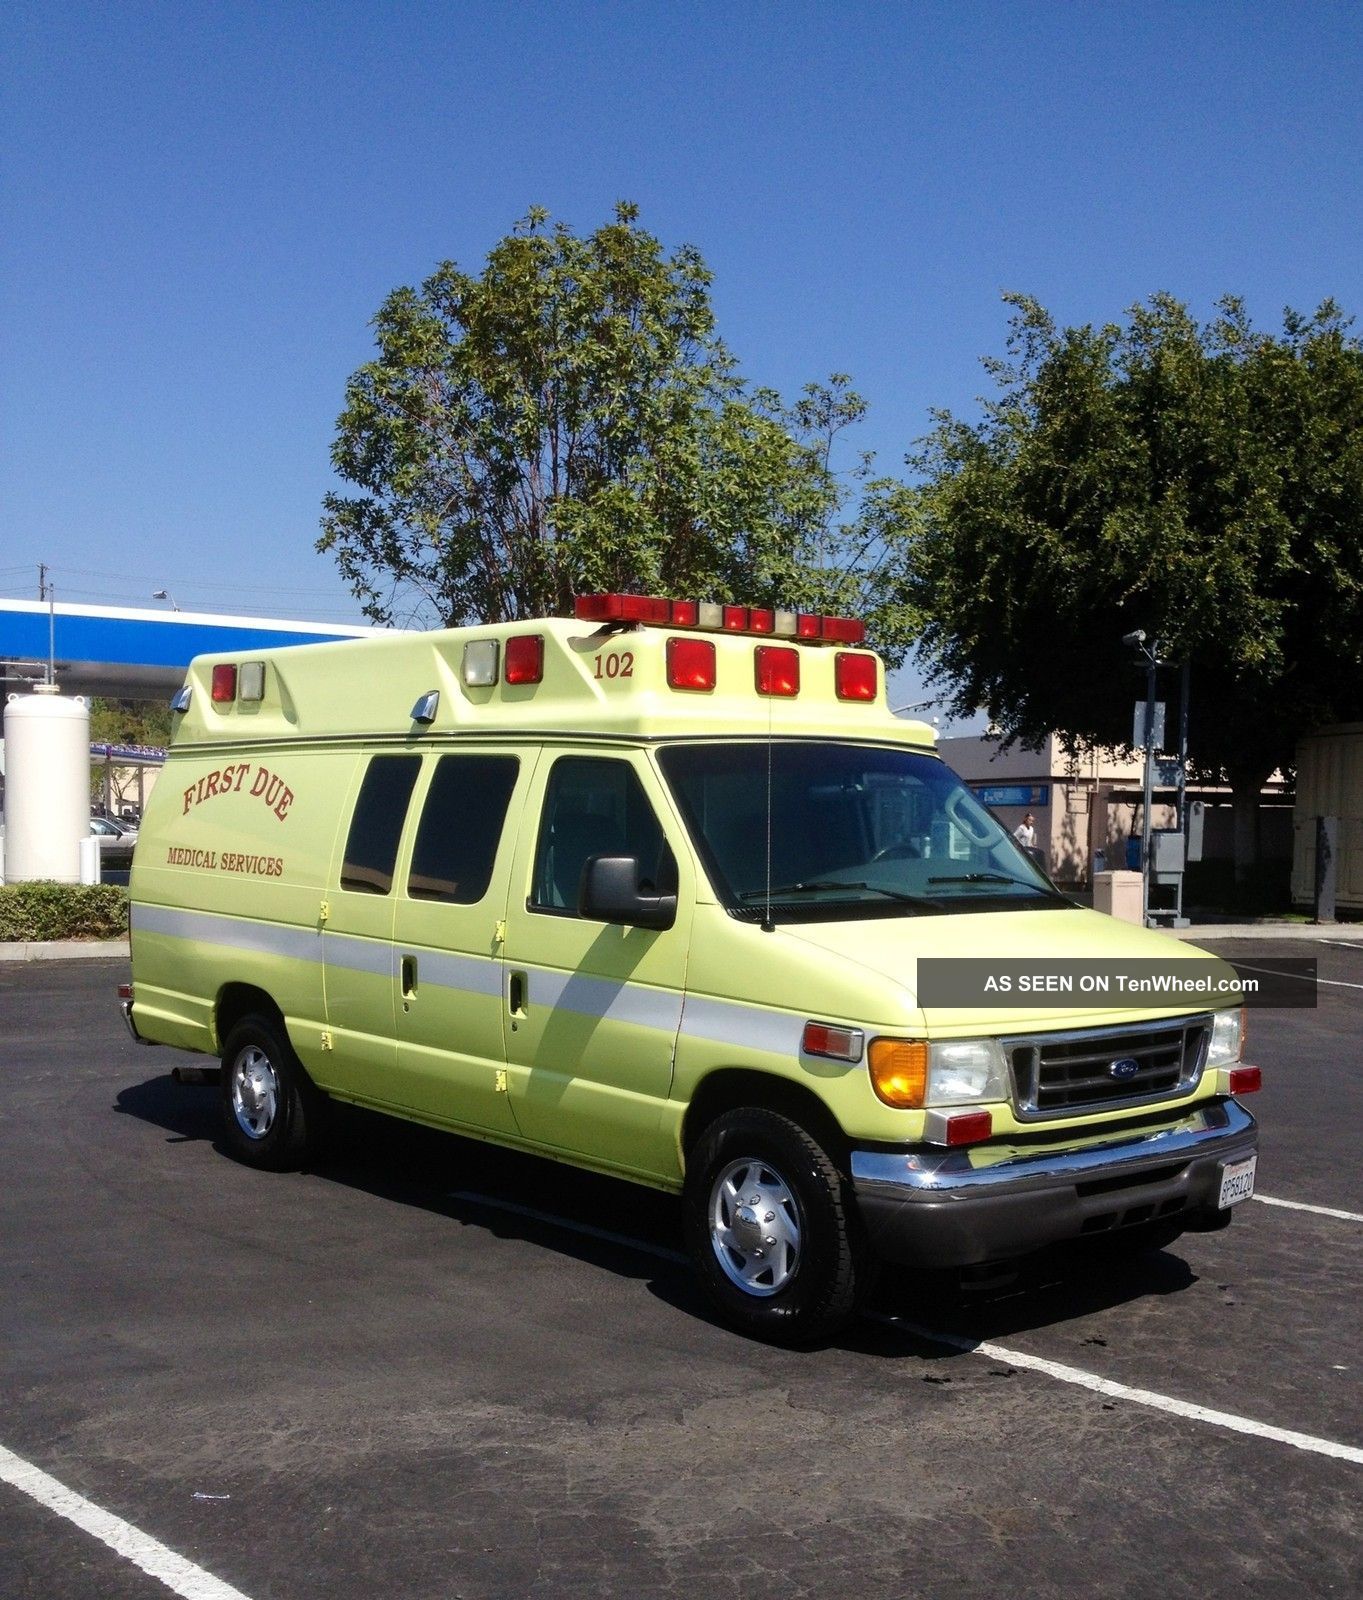 2005 Ford Ambulance Type Ii